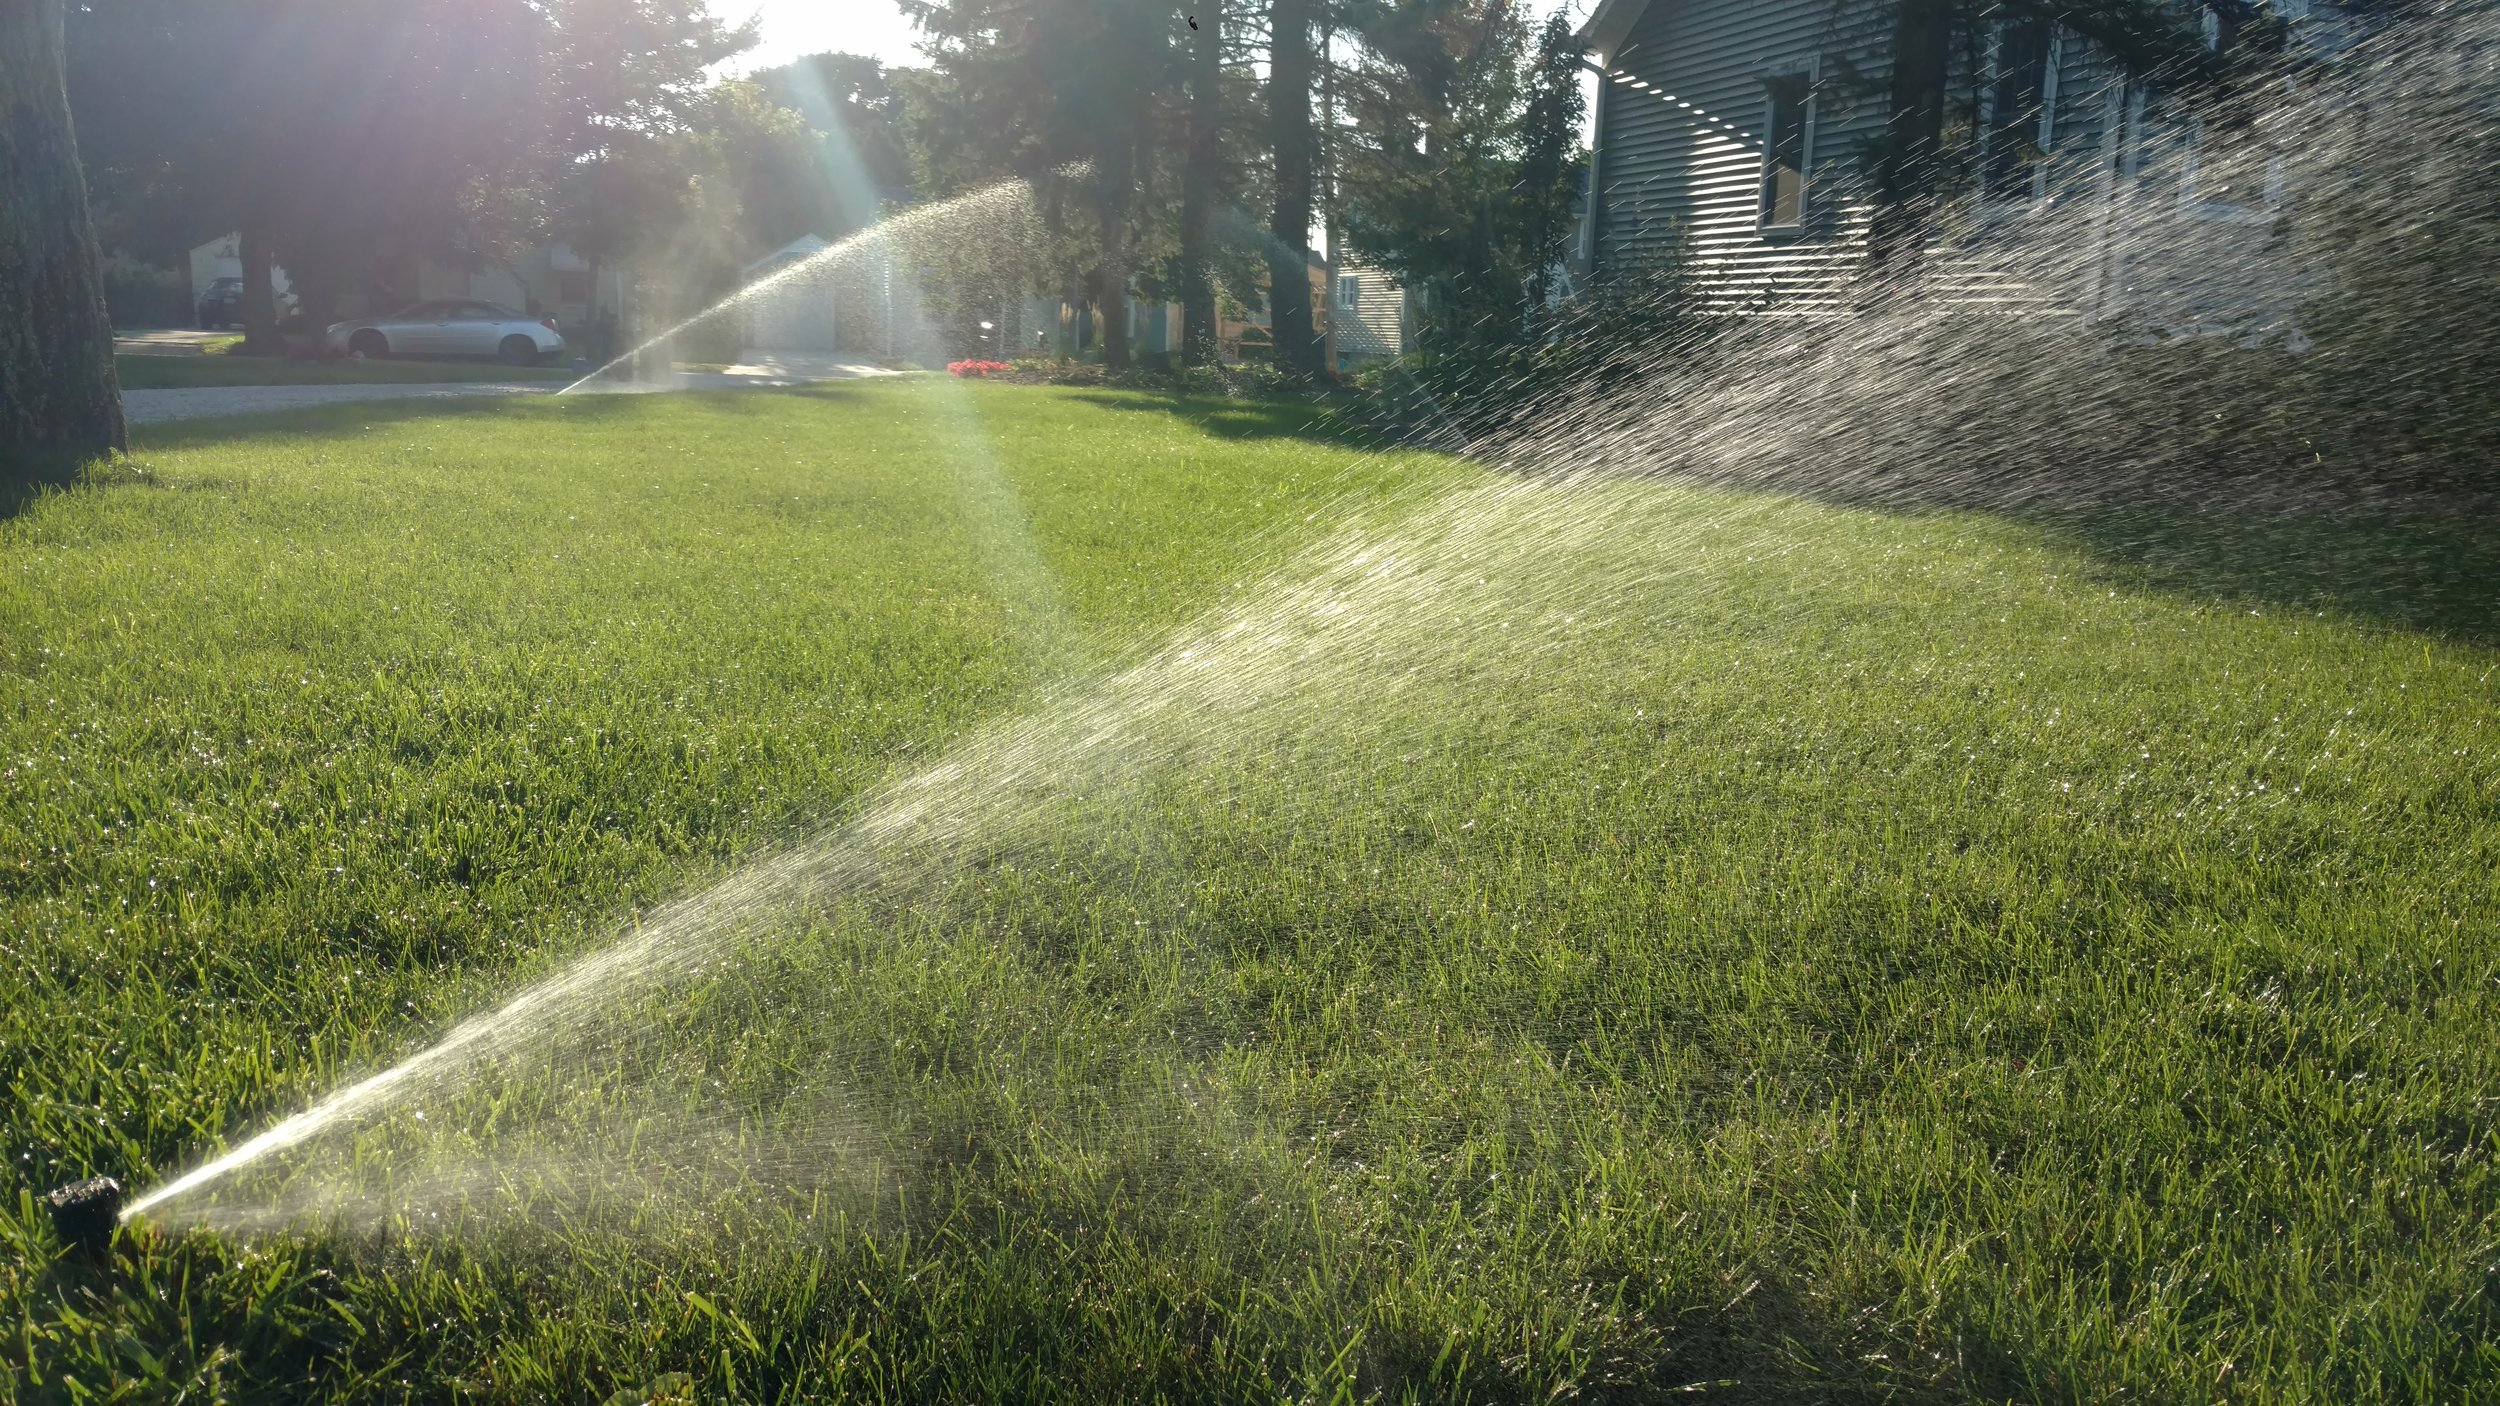 Lawn Sprinklers - Call 989.213.9090 FOR SALES & SERVICE